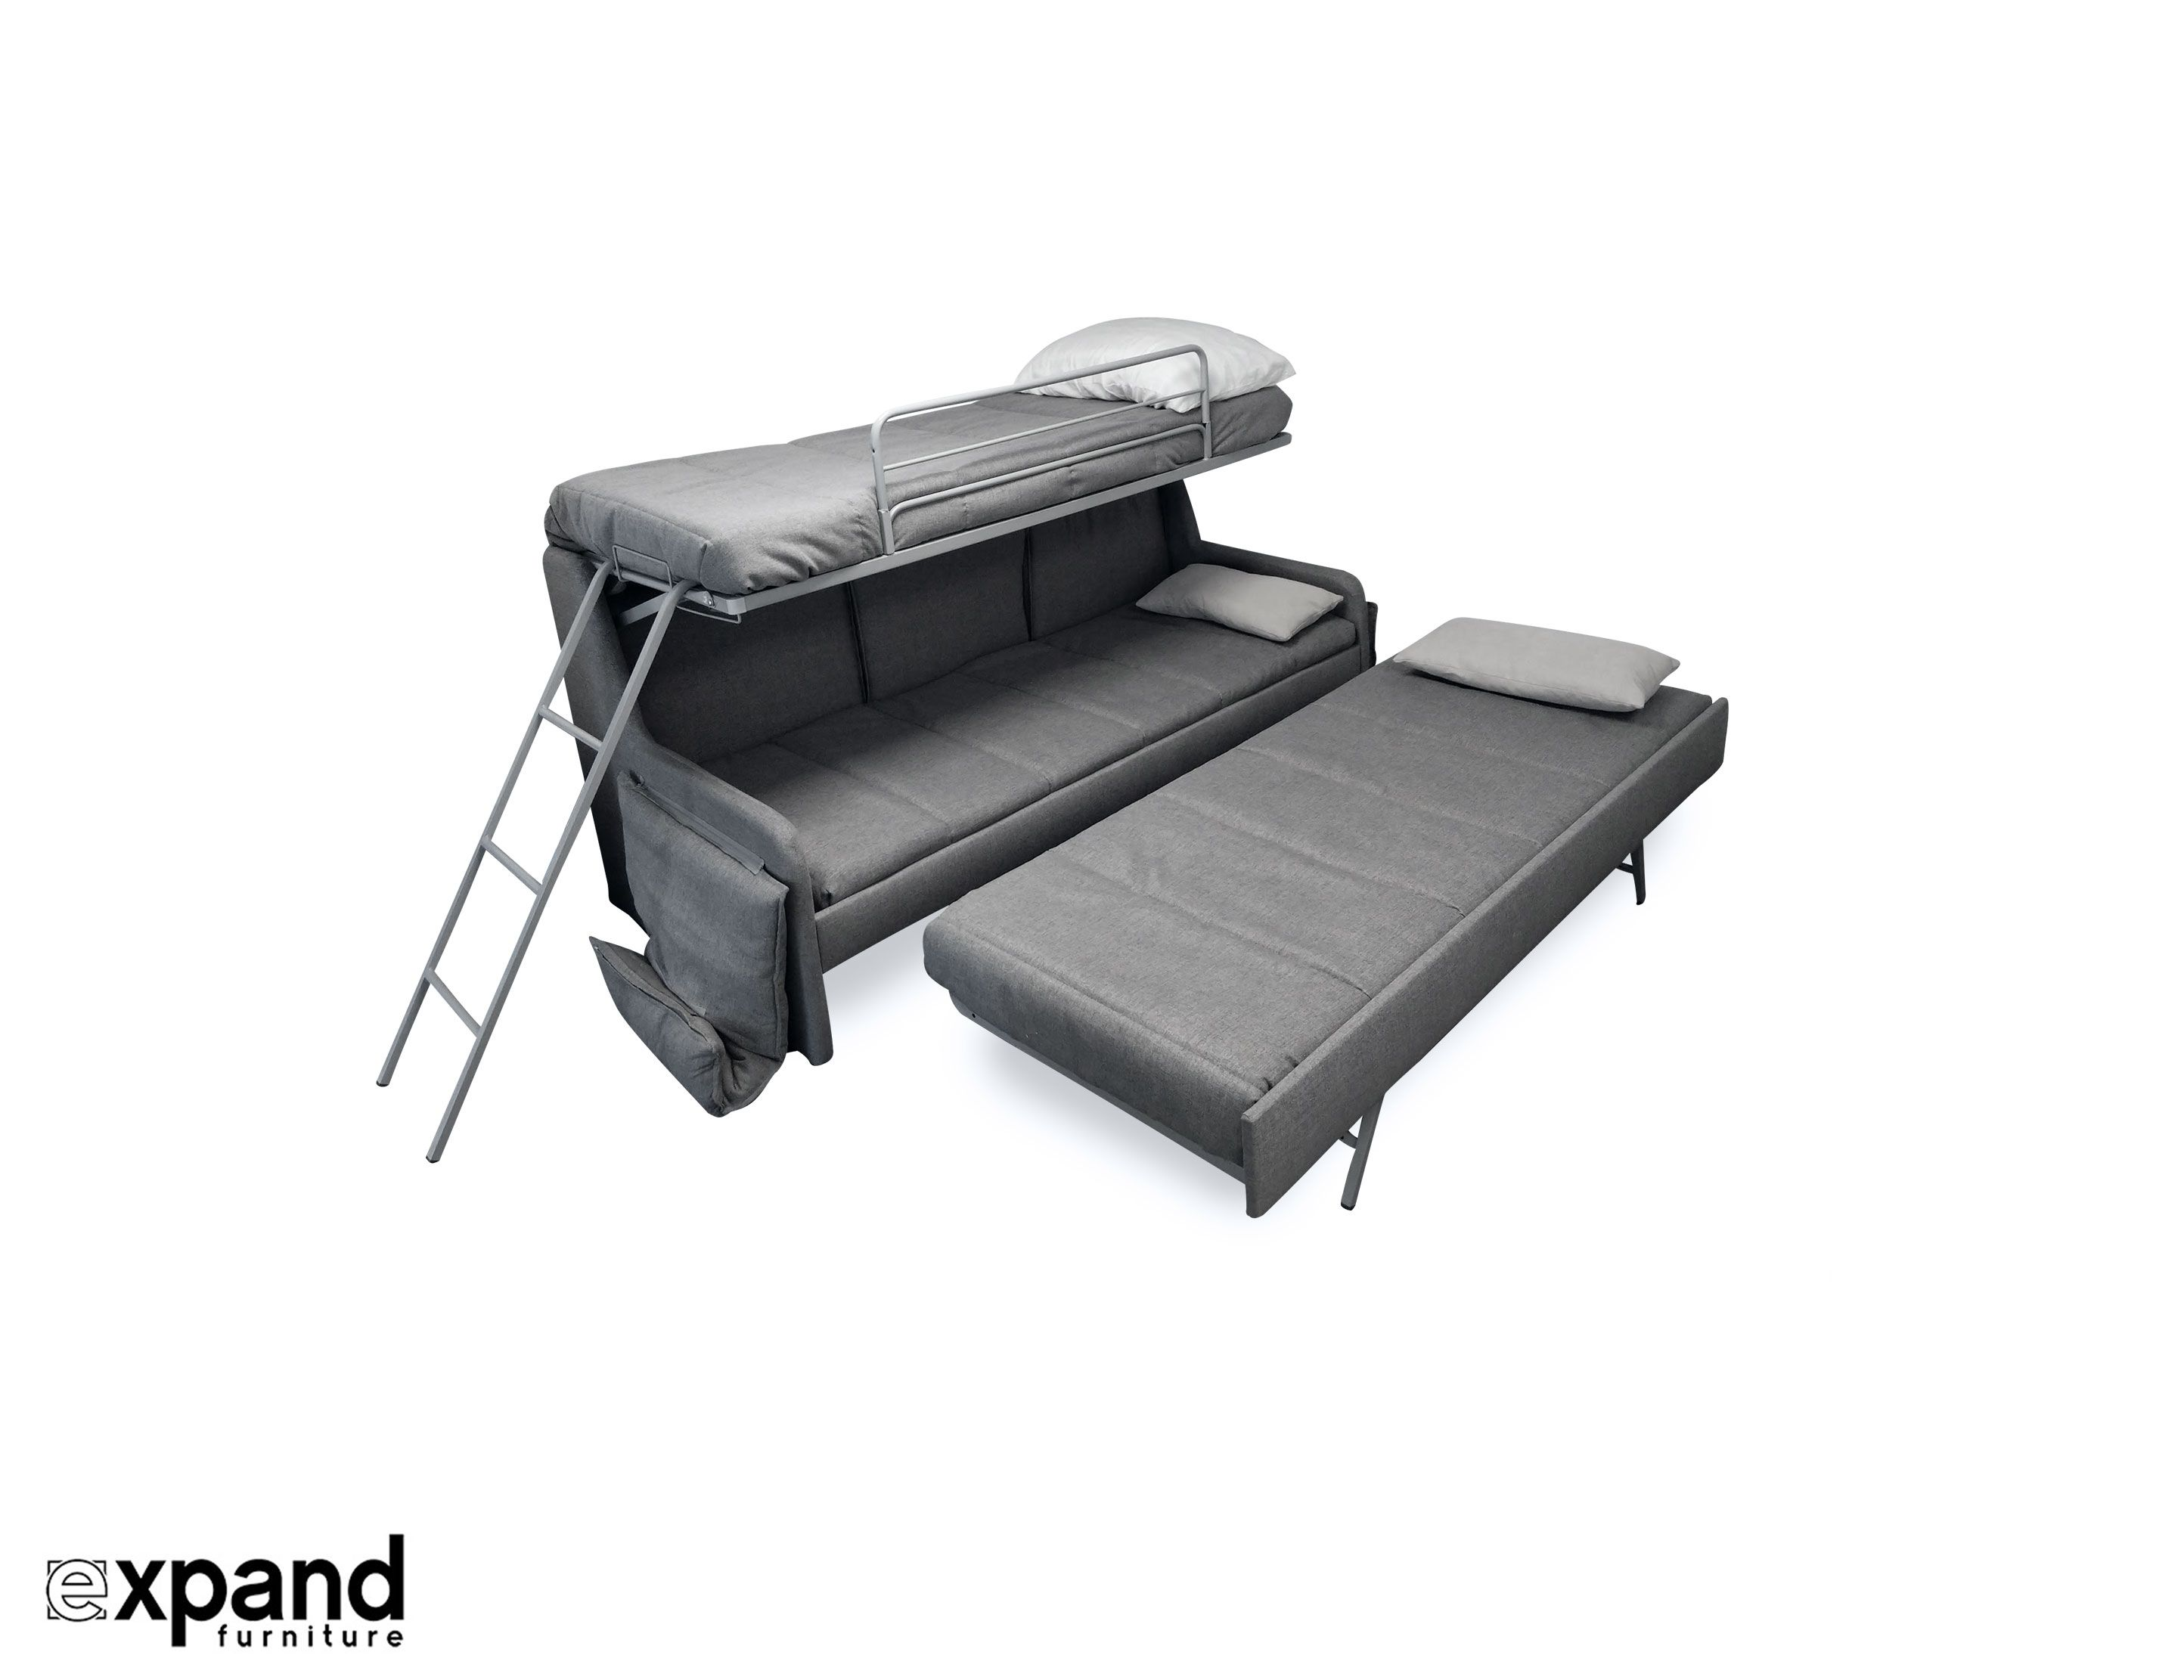 Transforming Sofa Bunk Bed Expand Furniture Modern Sofa Bed - Klappbett Sofa